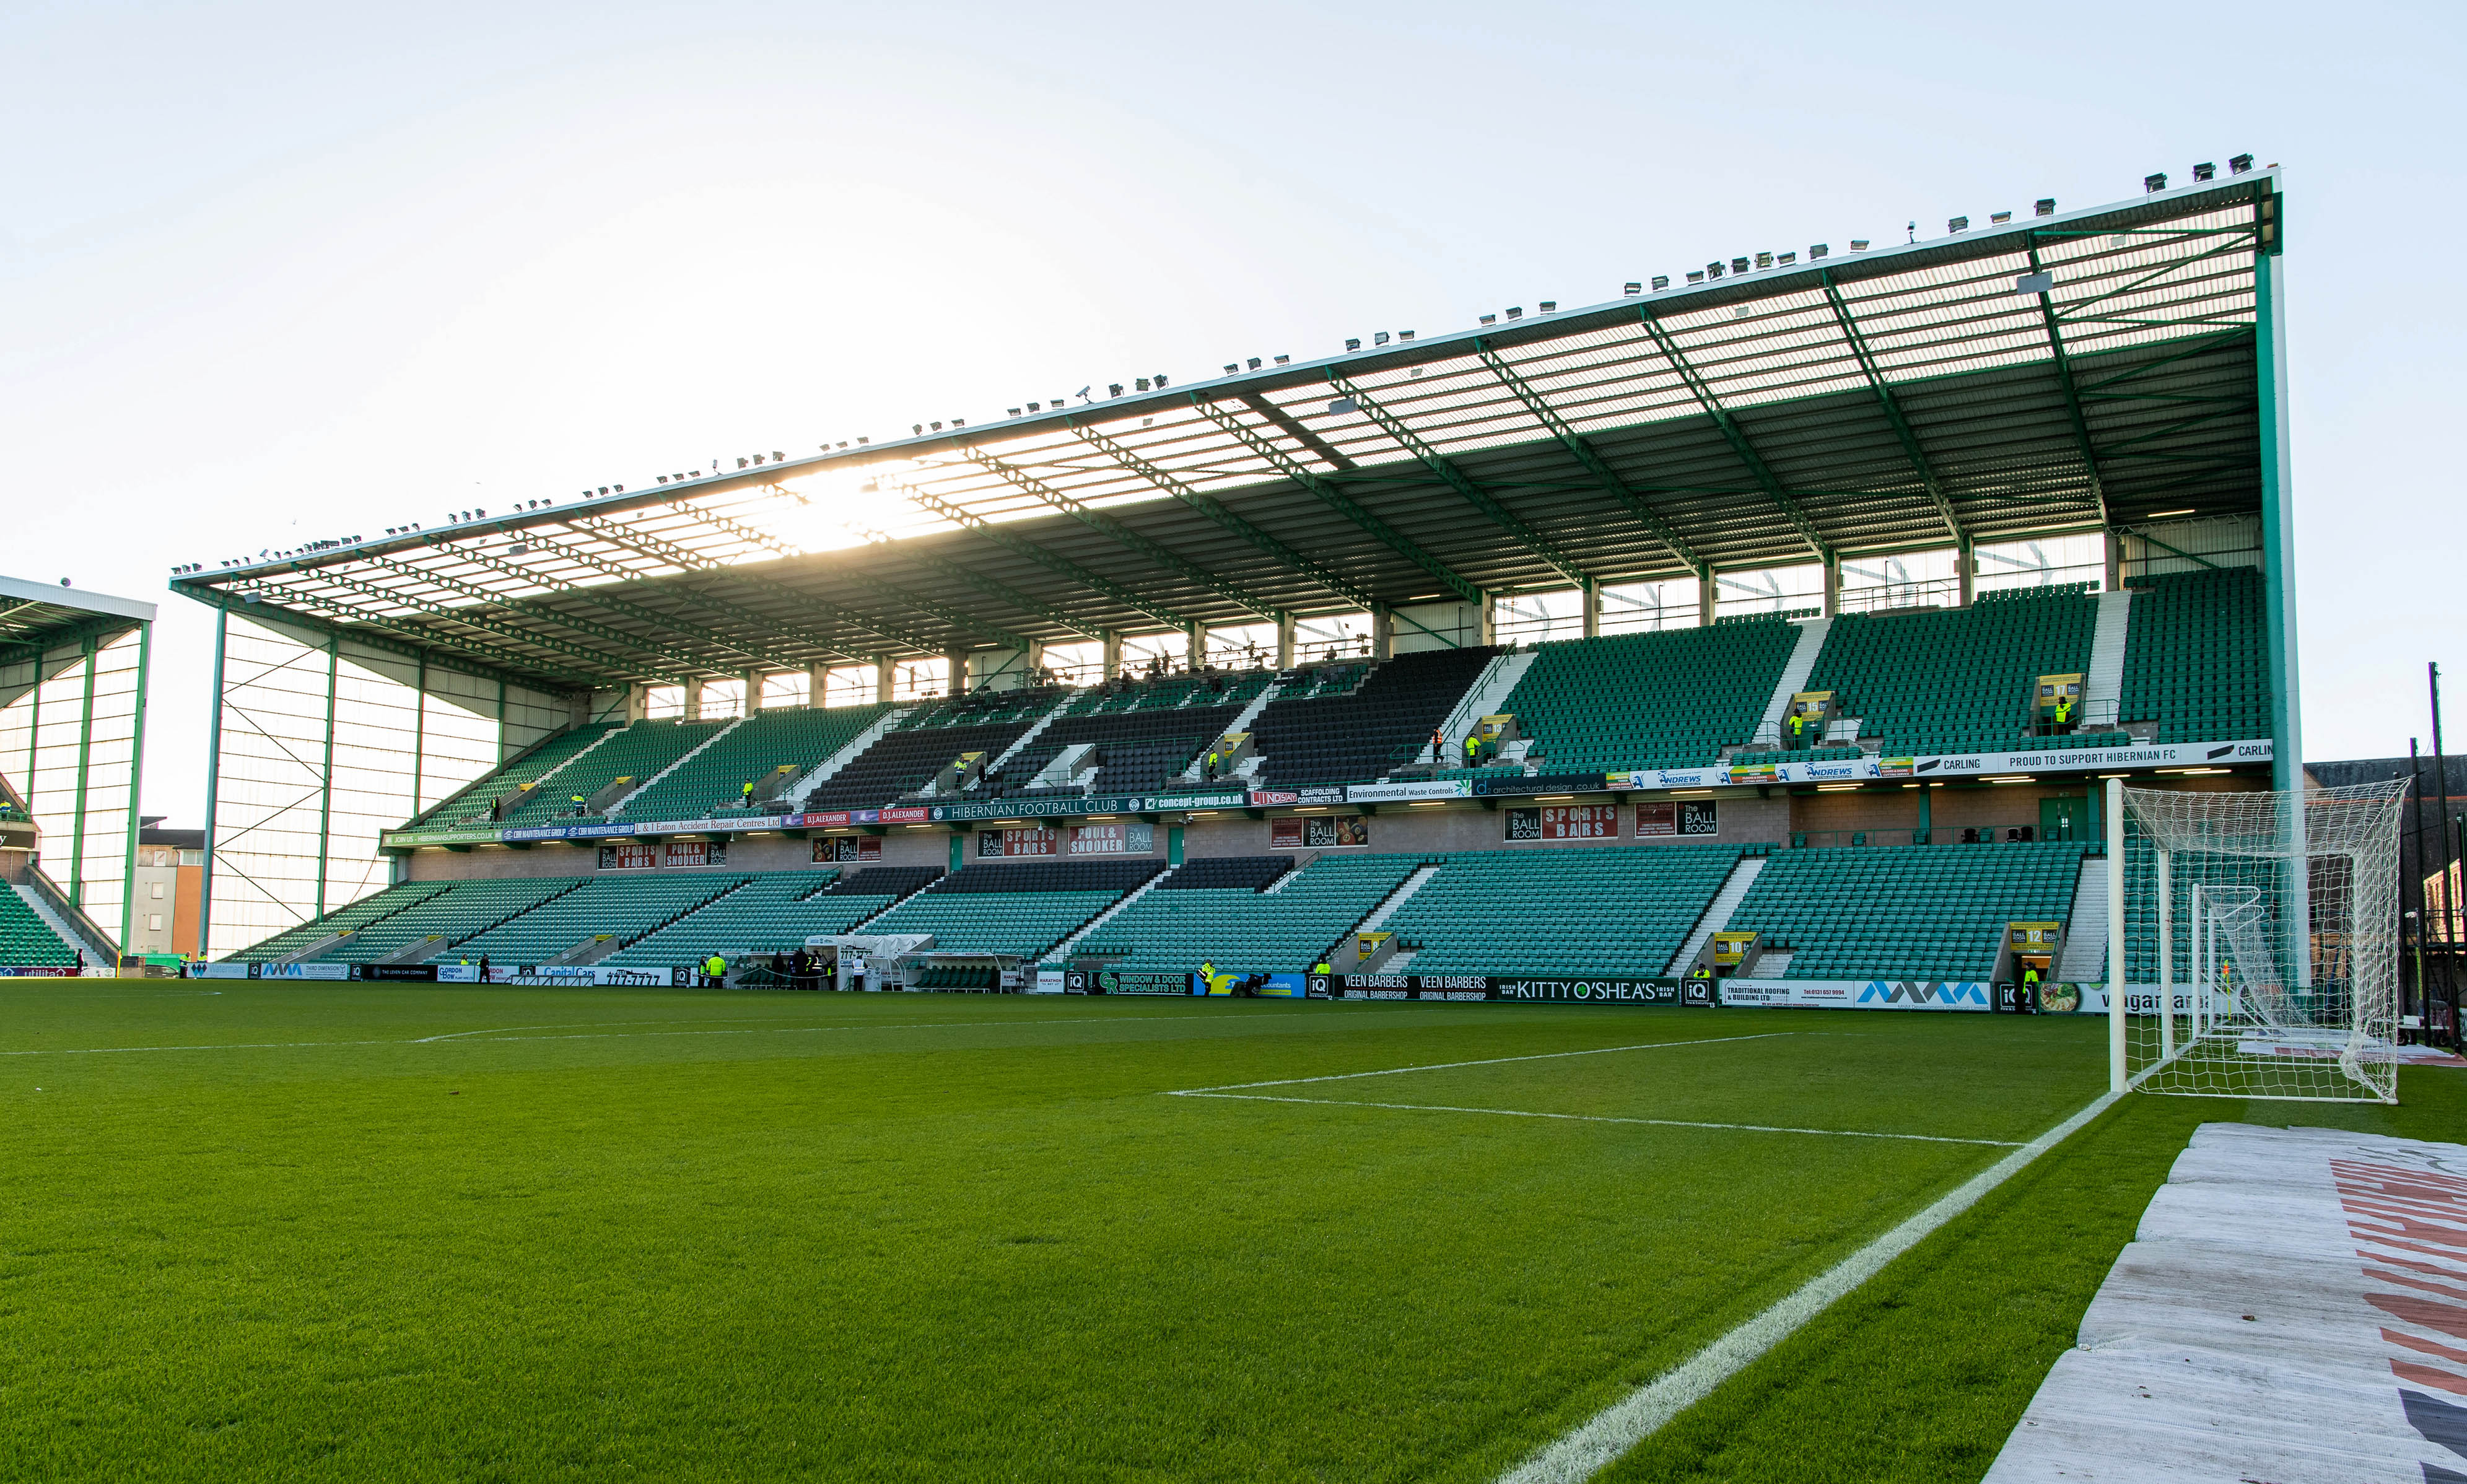 Hibernian FC's home ground at Easter Road.